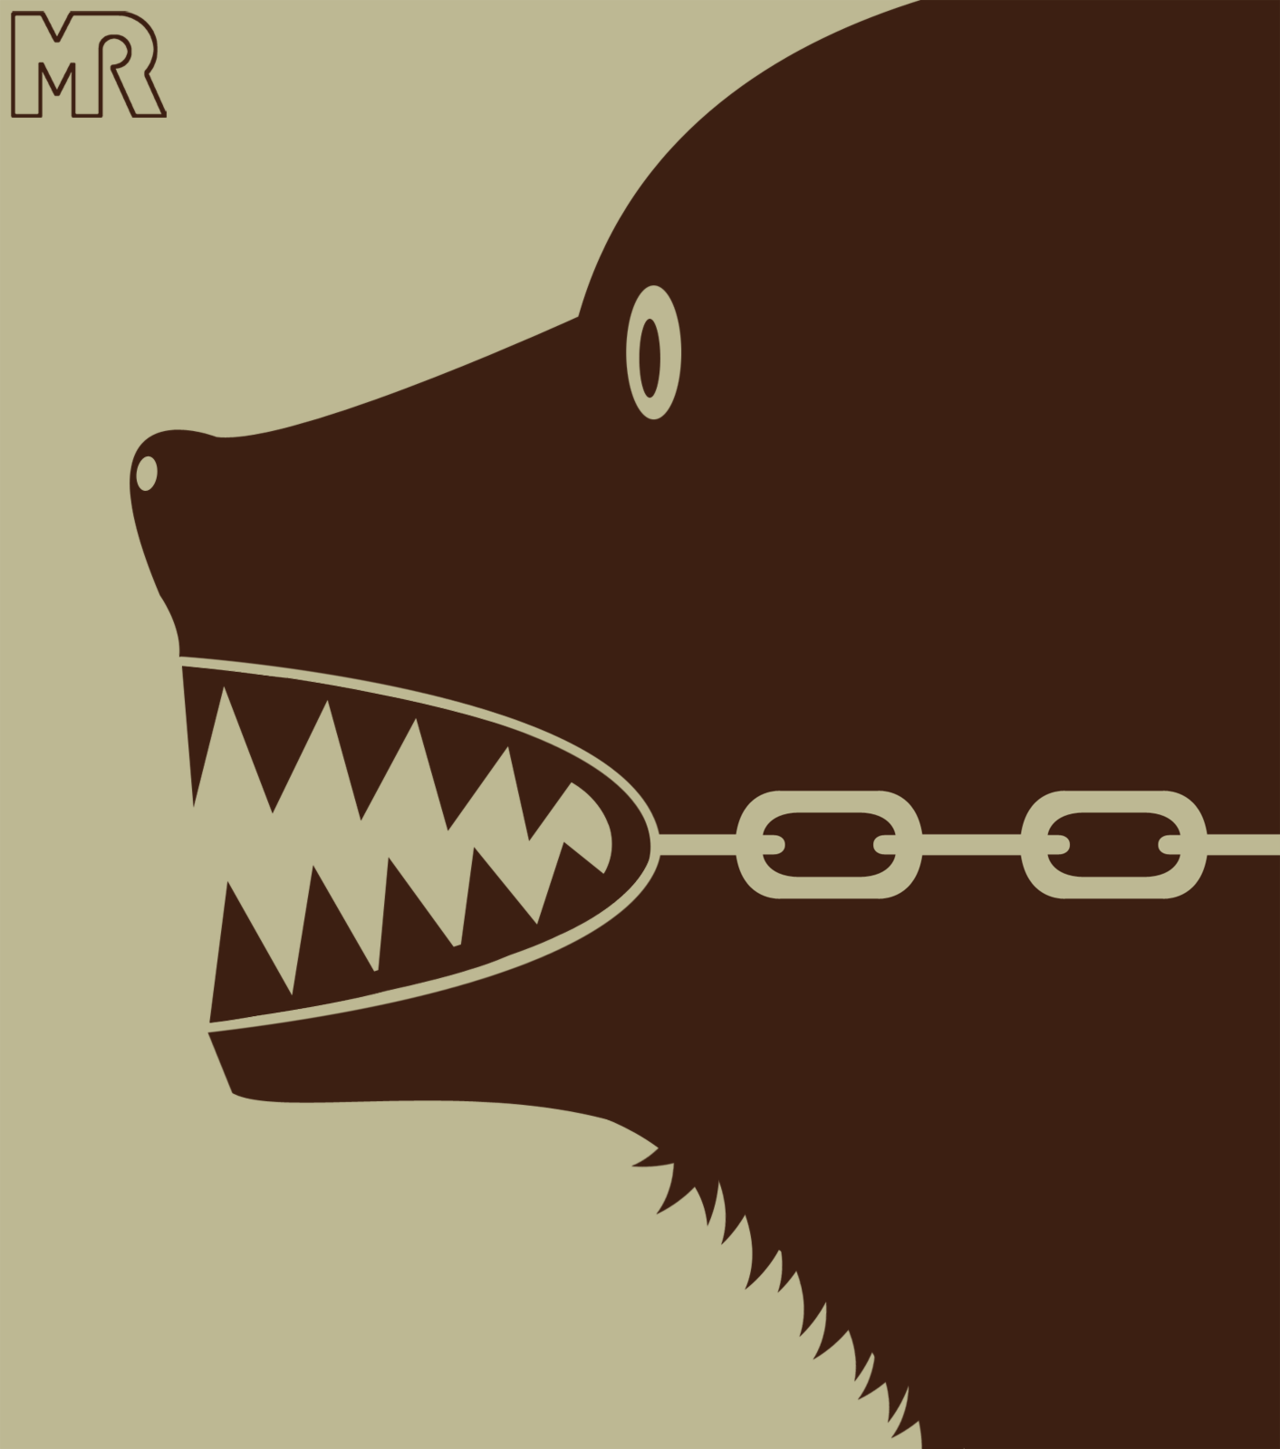 Bear Trap Art Illustrative And Quirky Representation Of Bear Traps As A Physical Trap And Also As A Metaphor For A Bear S Jaw Trap Art Art Bear Trap